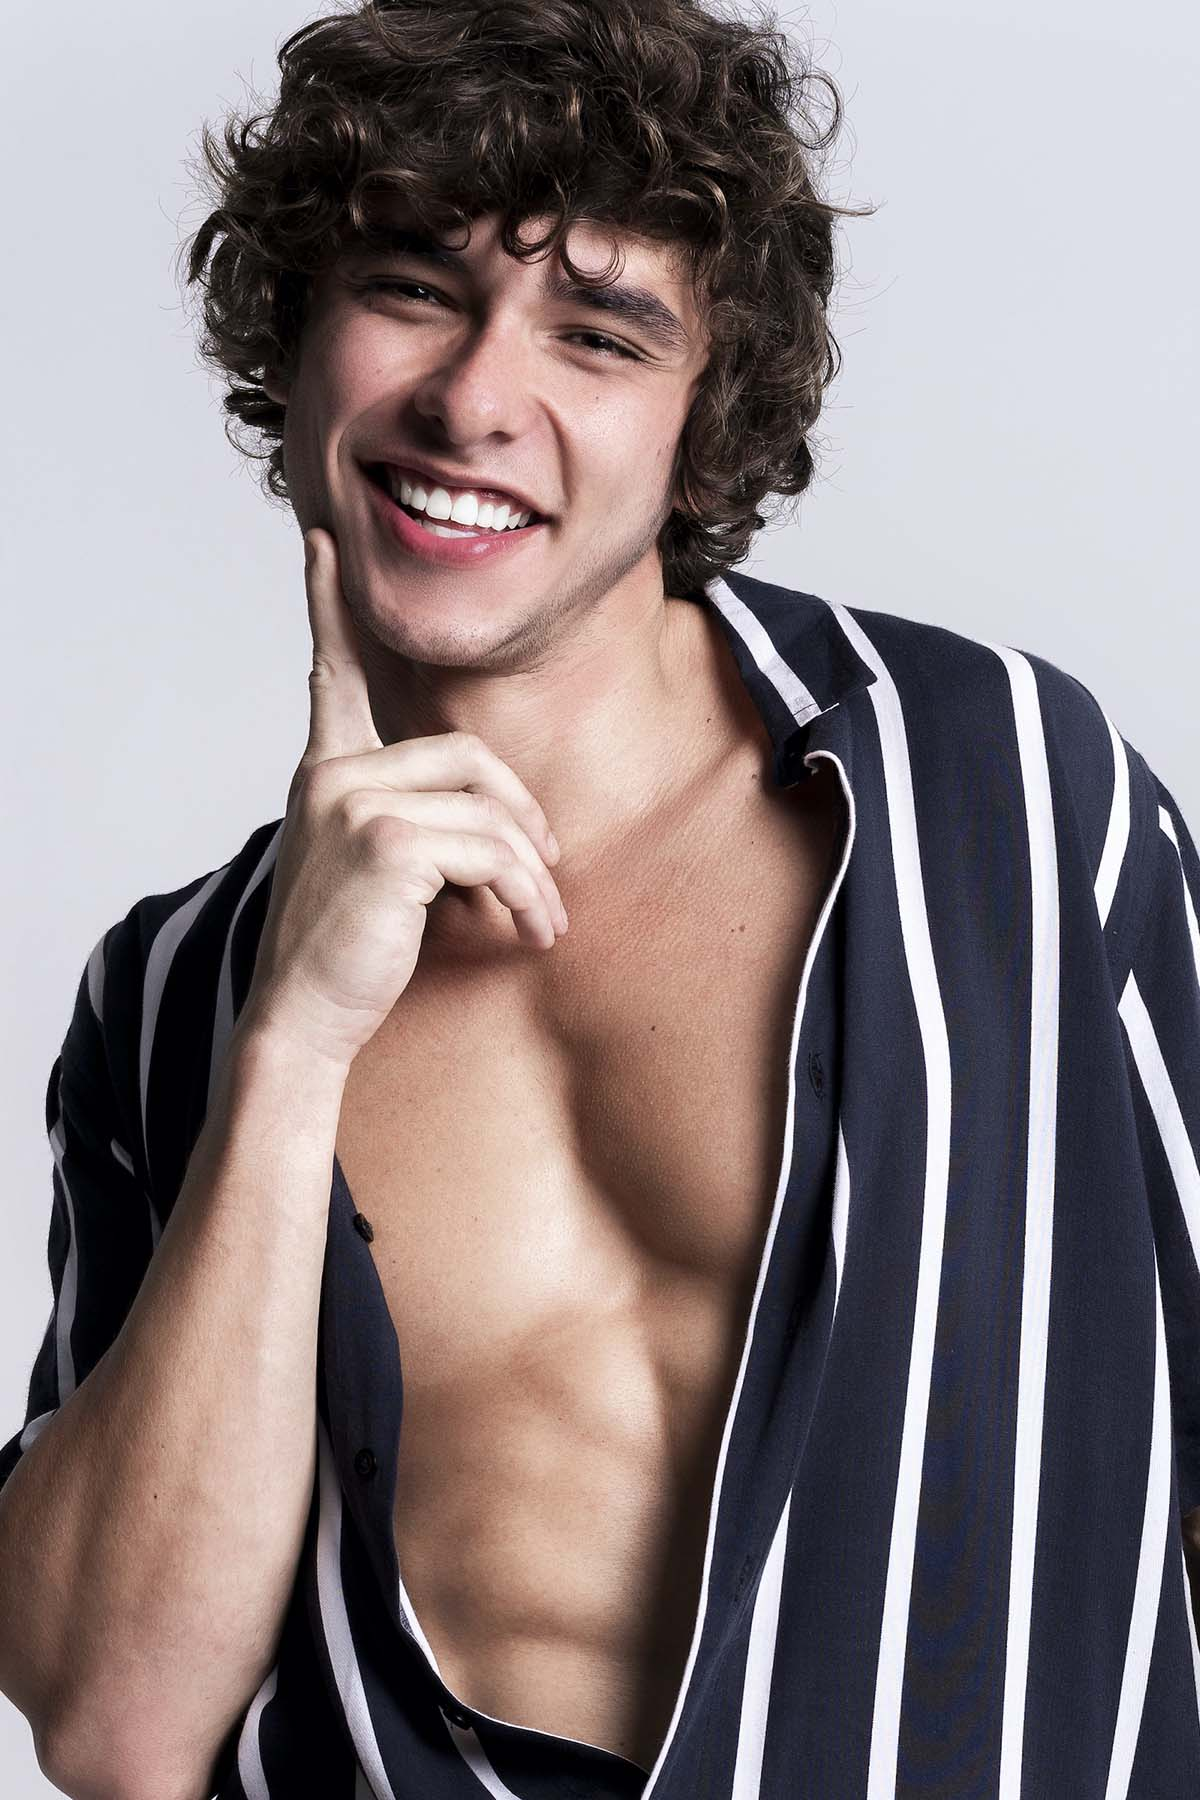 André Zomkowski by Luciano Moraes for Brazilian Male Model